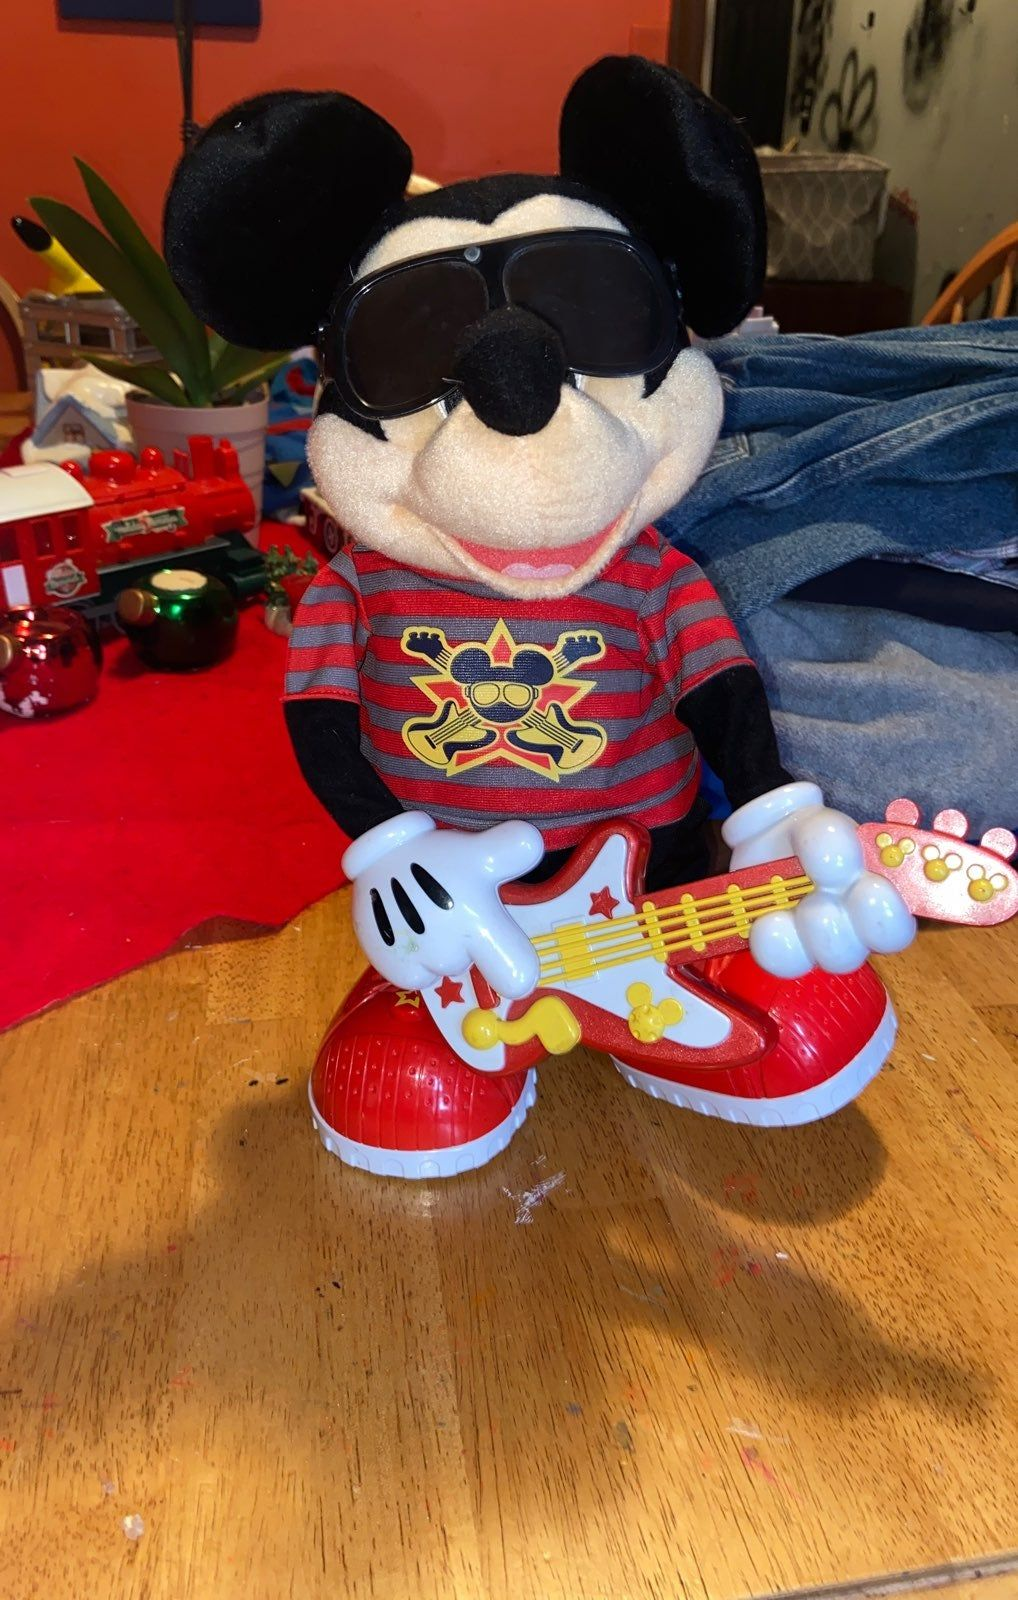 Rock 'n' roll Mickey Mouse electronica toy with movement